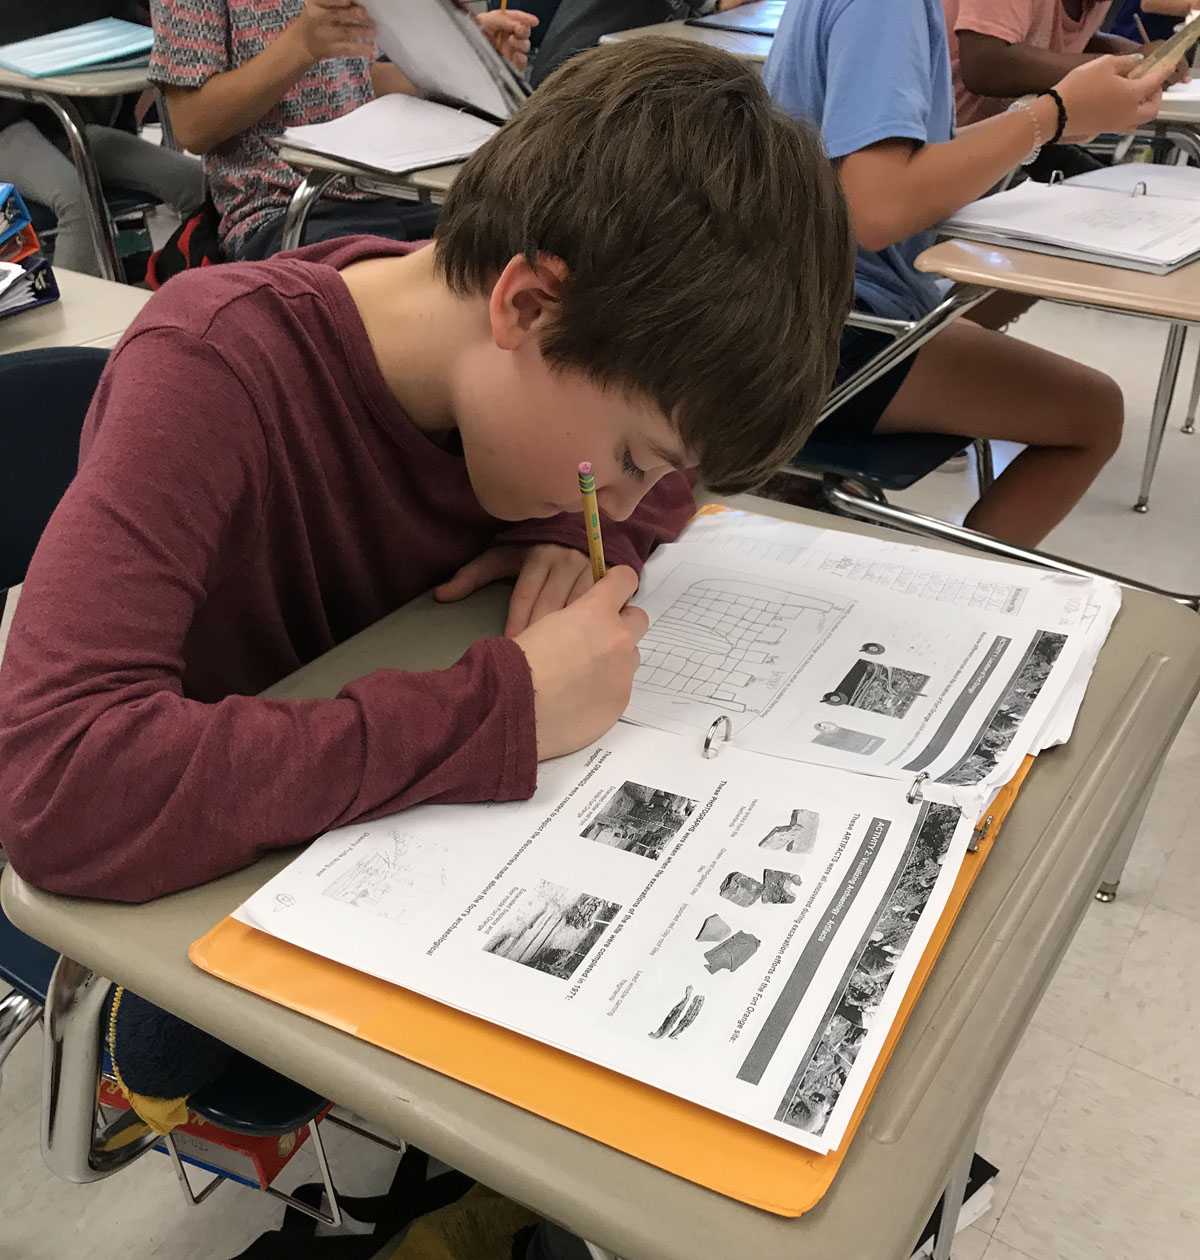 Student completes worksheet in class